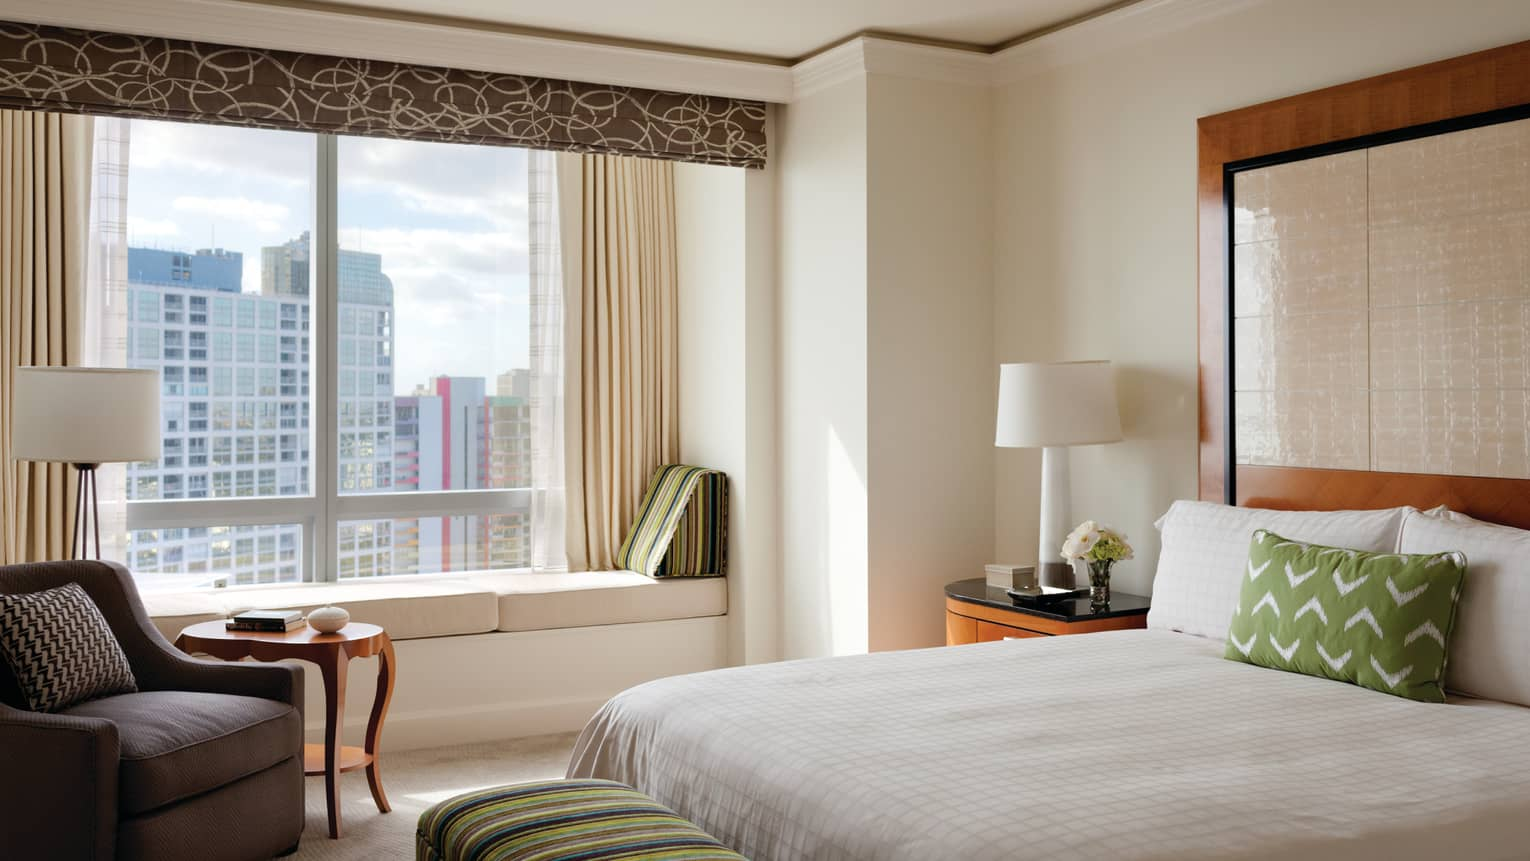 A hotel room with an open window looking out at the city